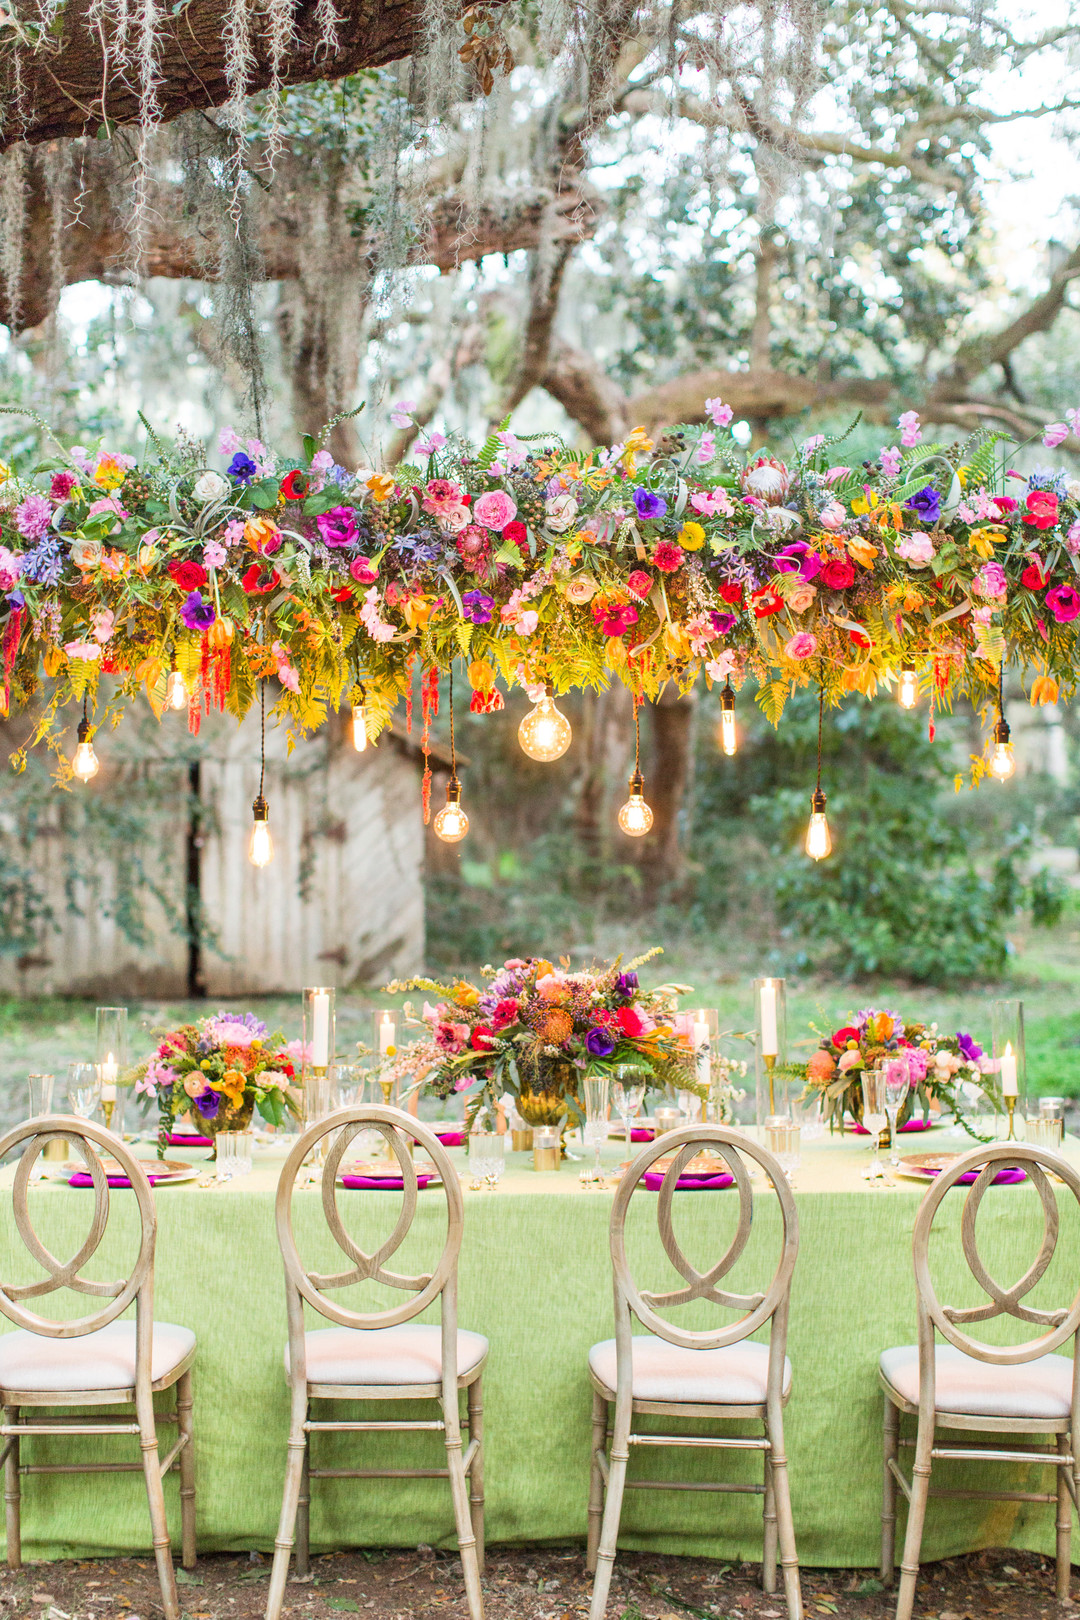 sunnyside-plantation-wedding-23.jpg